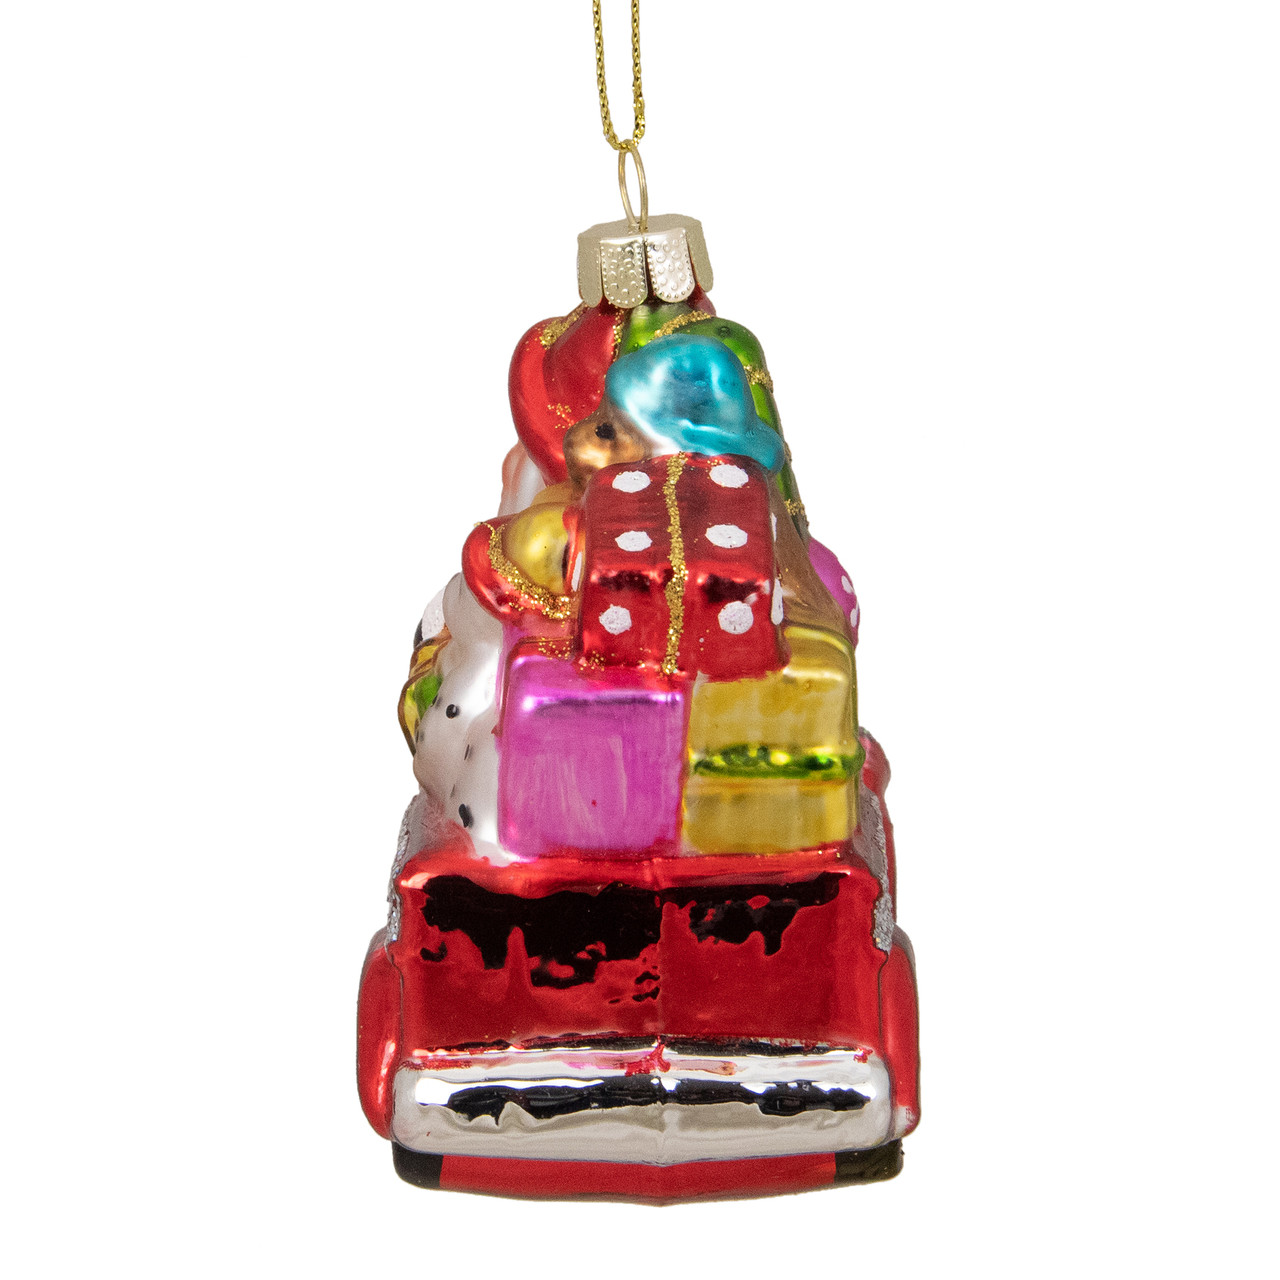 35 glass santa in fire truck decorative christmas ornament 31752658